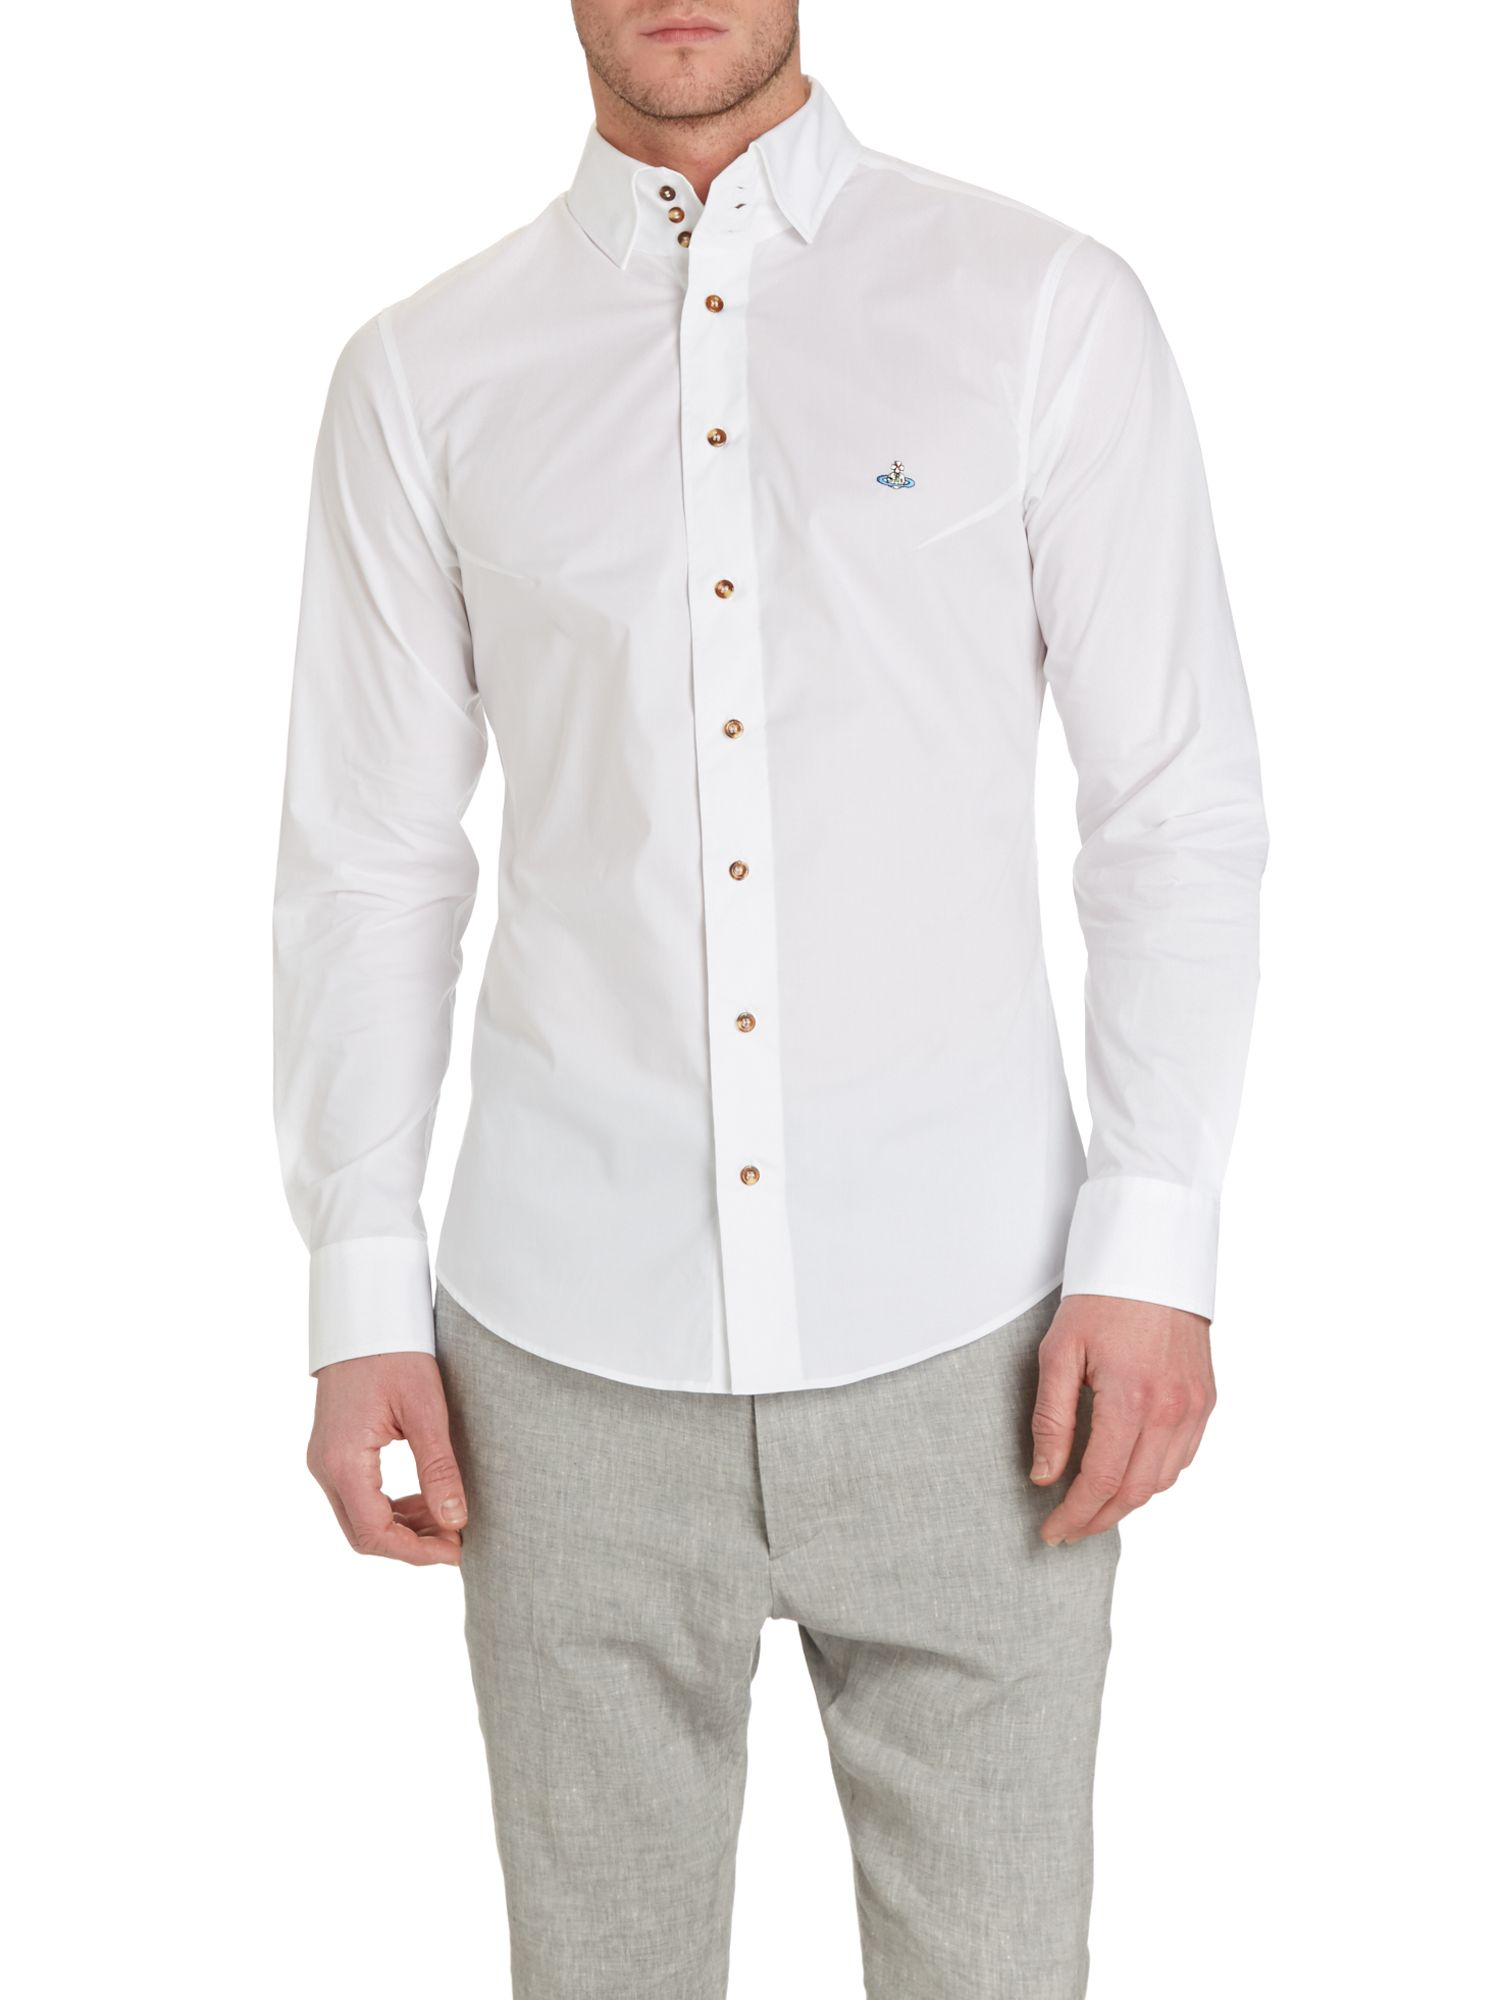 Three button collar long sleeve shirt